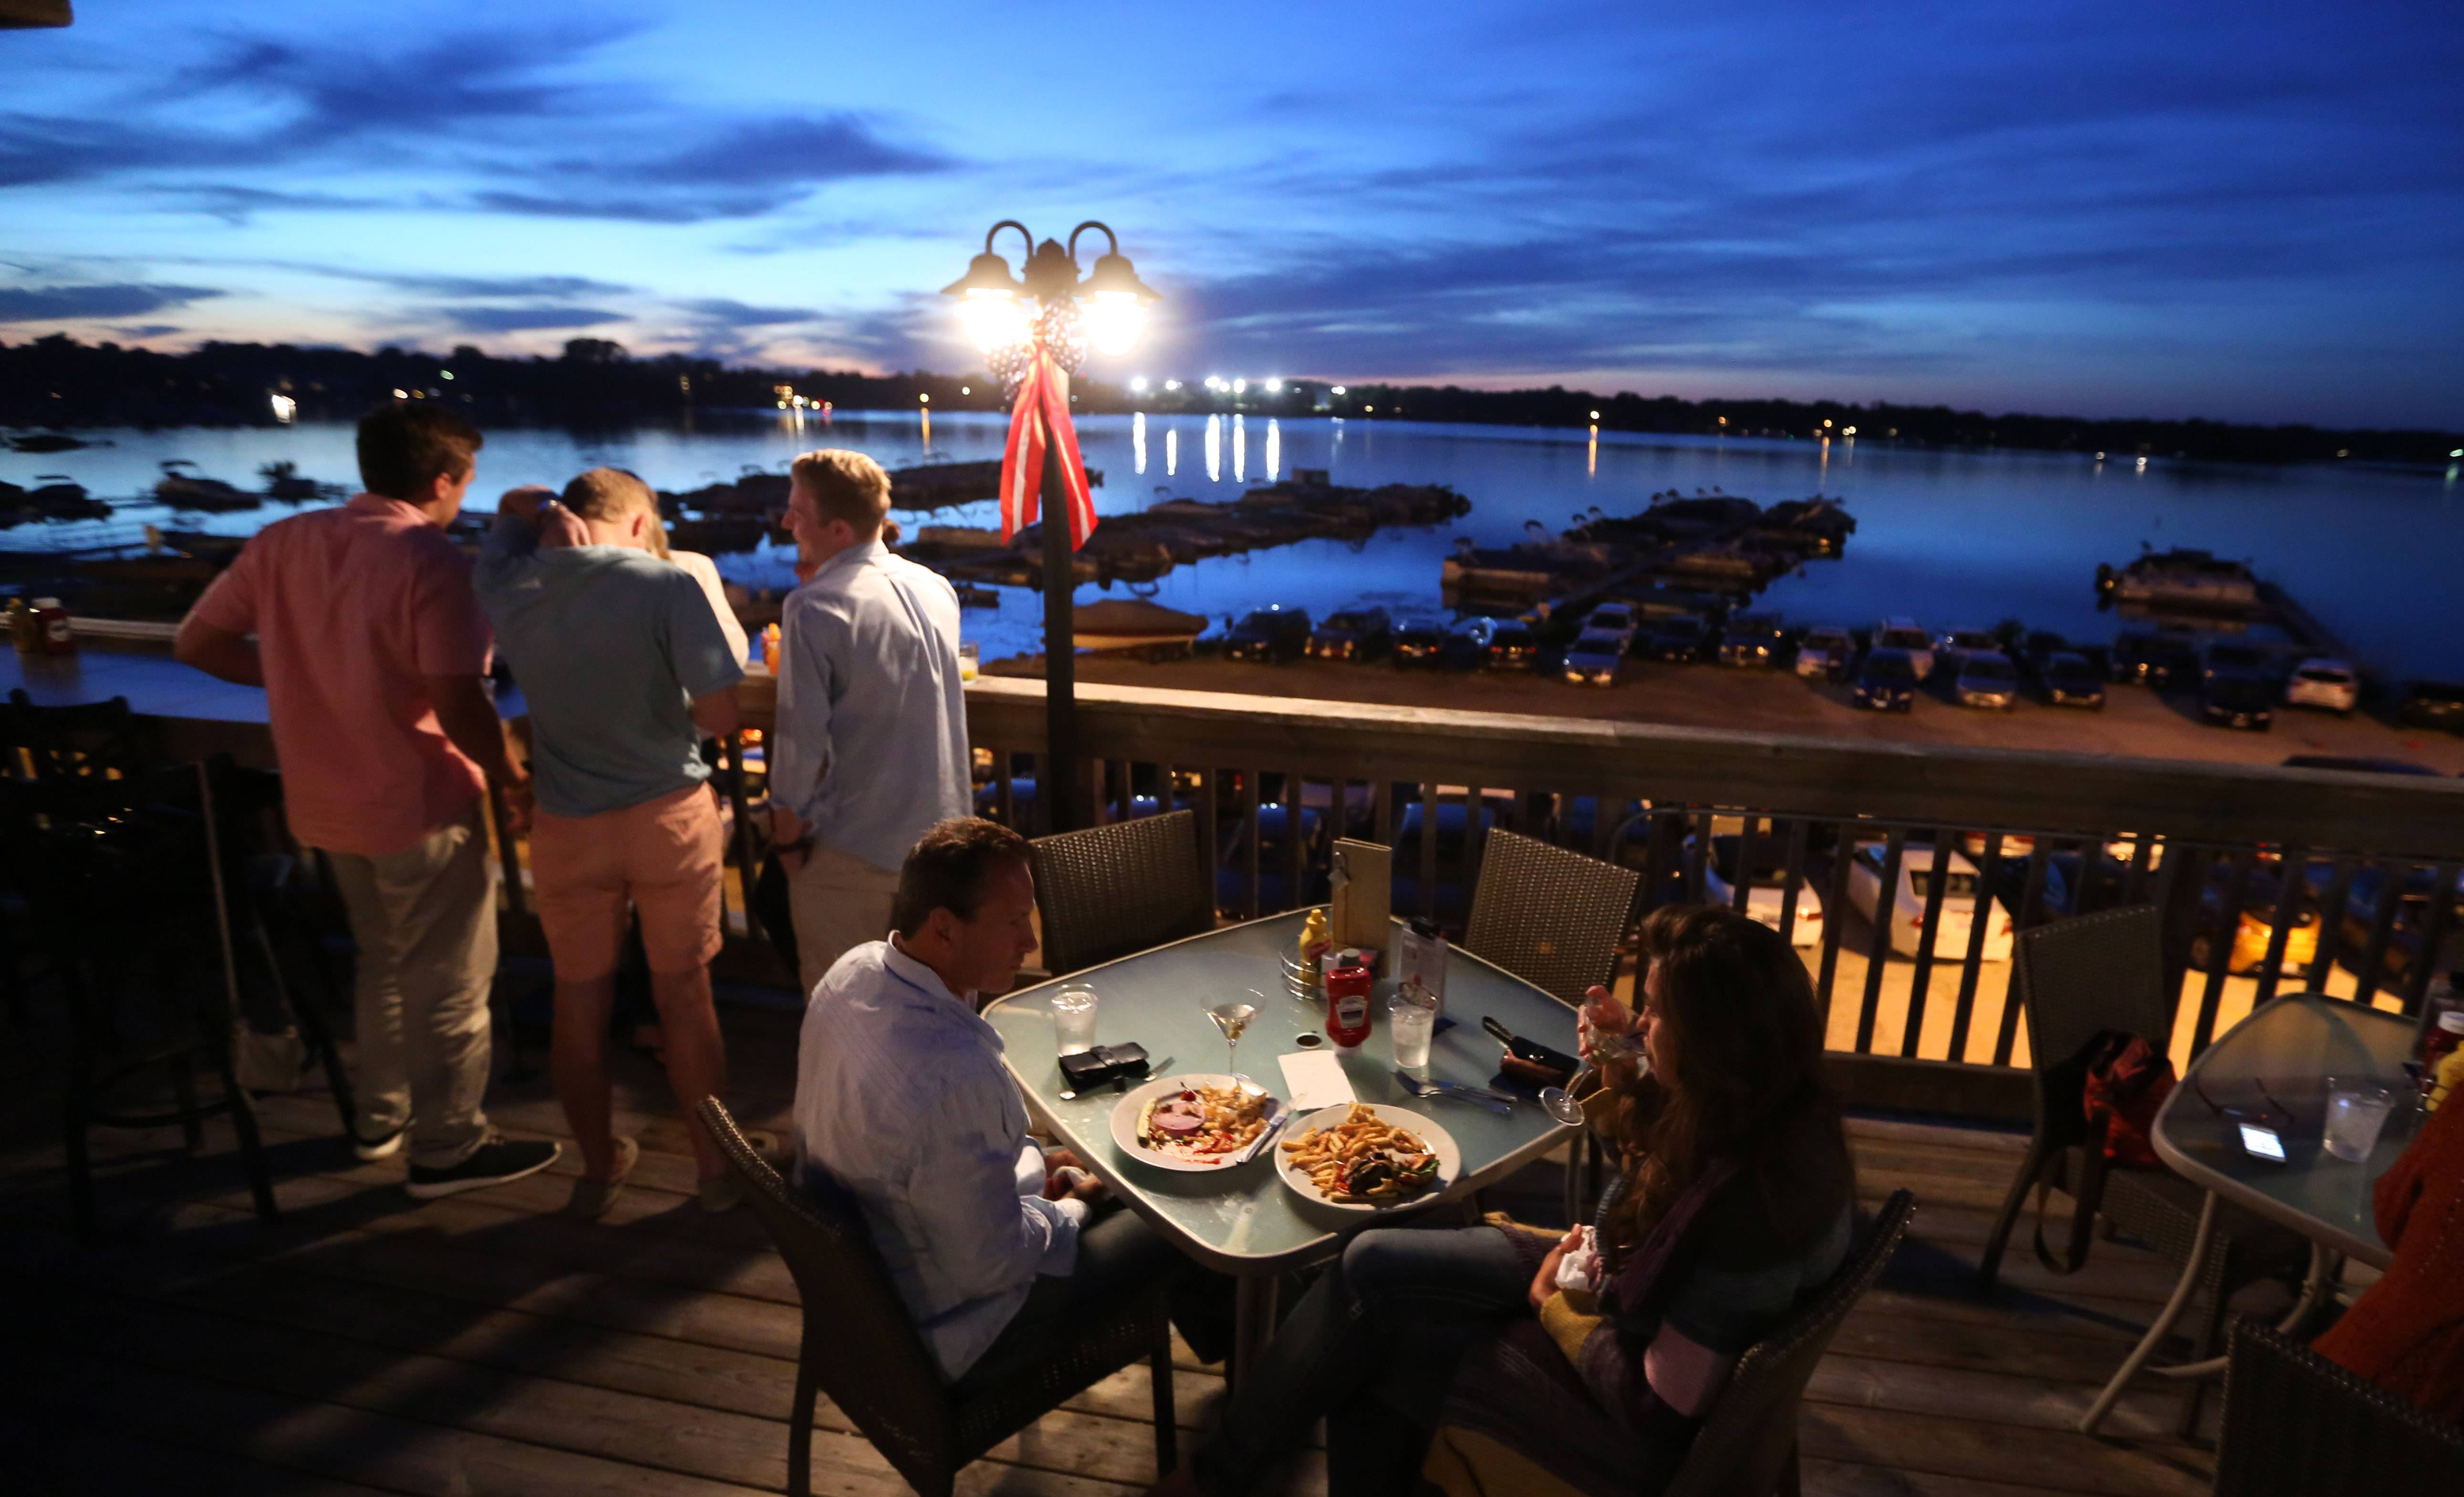 Outdoor dining is popular all summer long at Docks Bar & Grill in Wauconda.